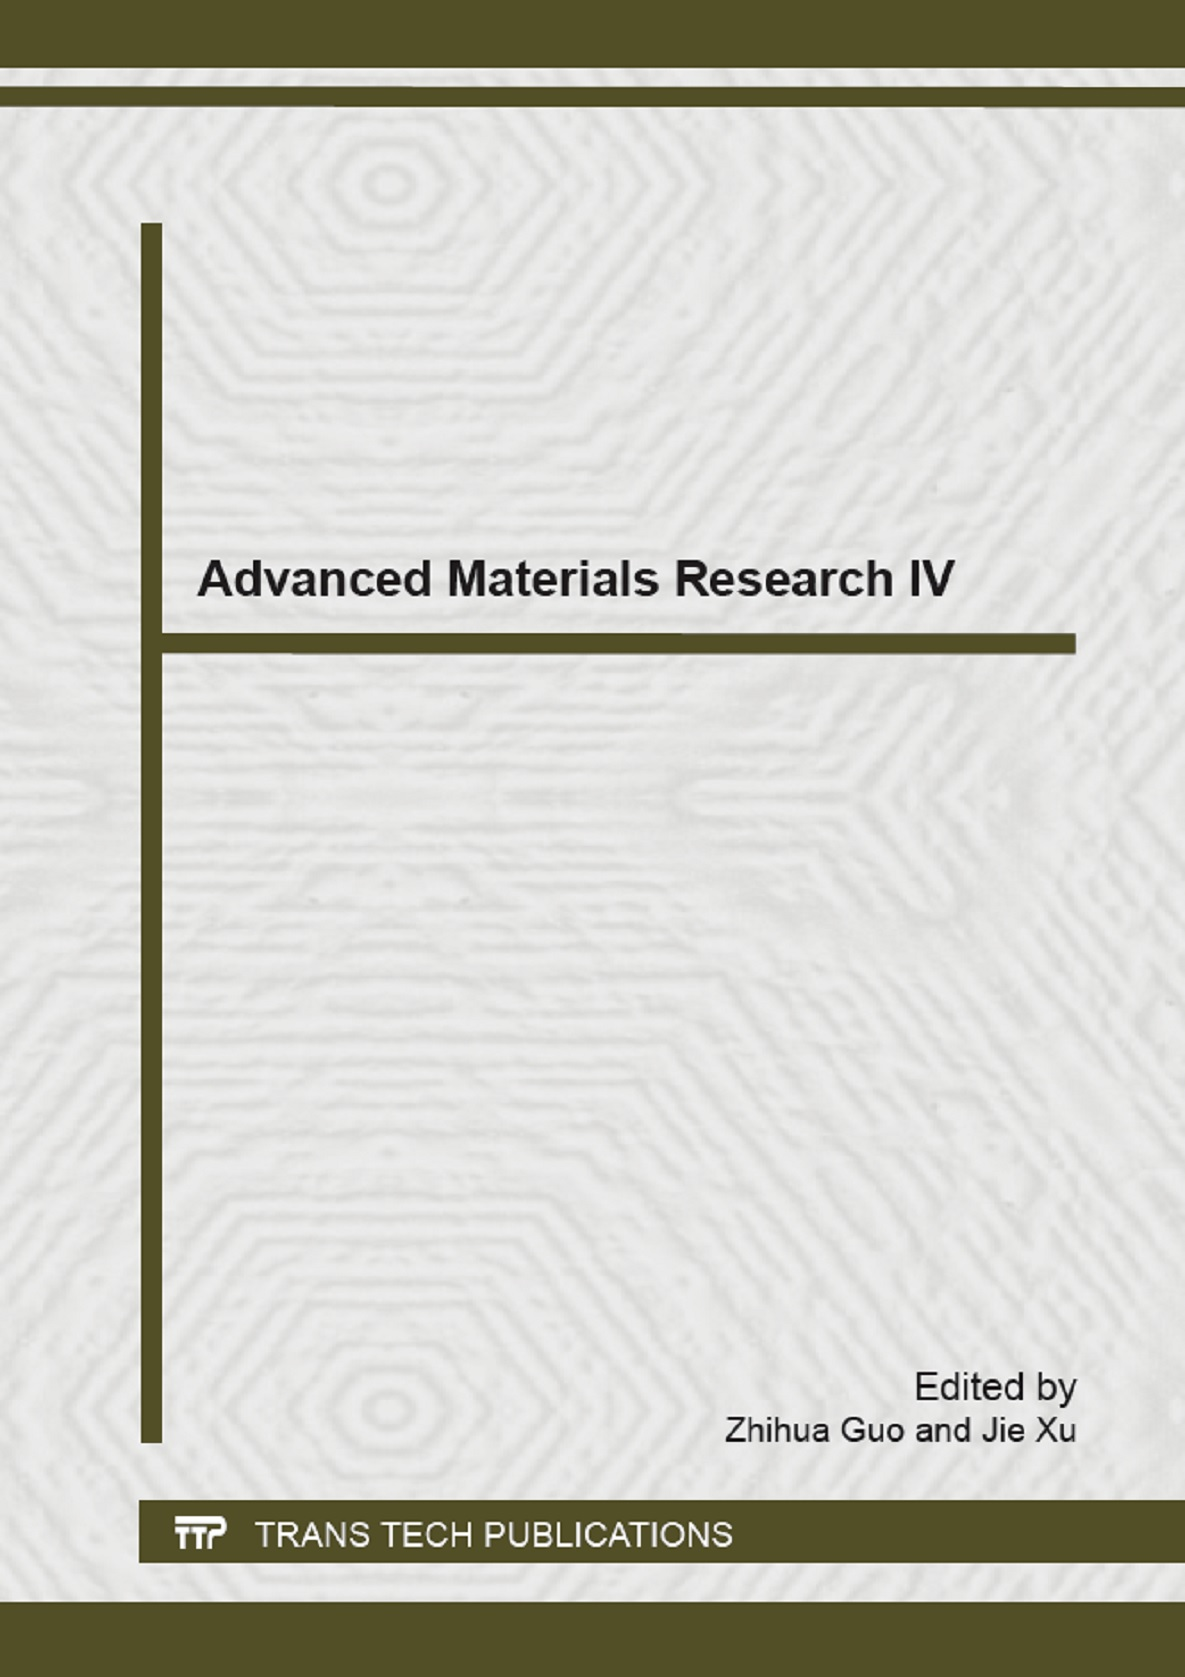 Advanced Materials Research IV